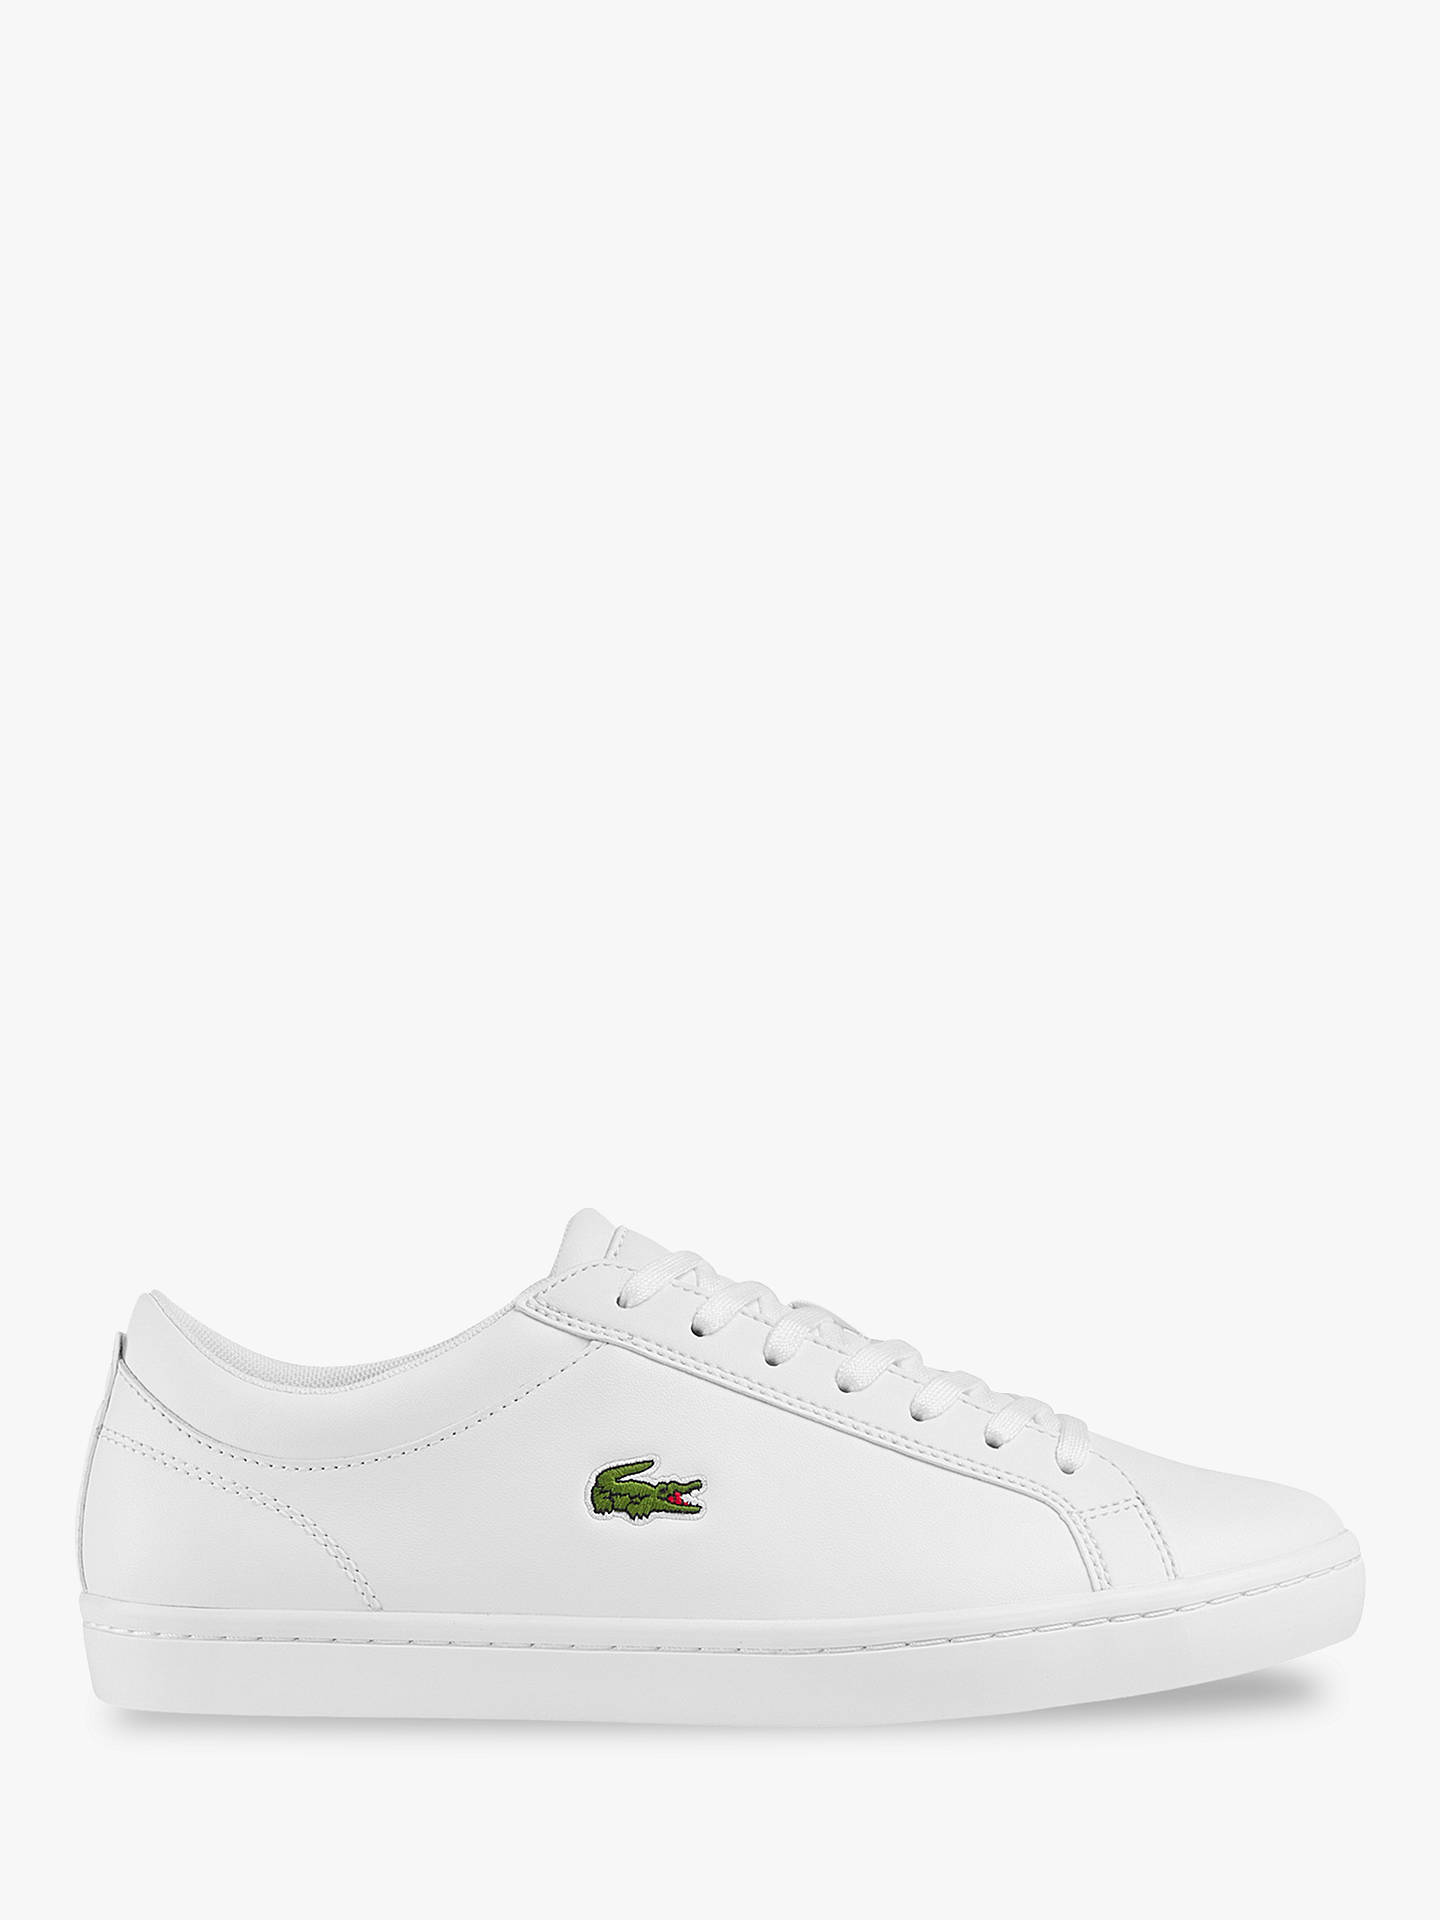 5fbbaeec1 Buy Lacoste Straightset Trainers